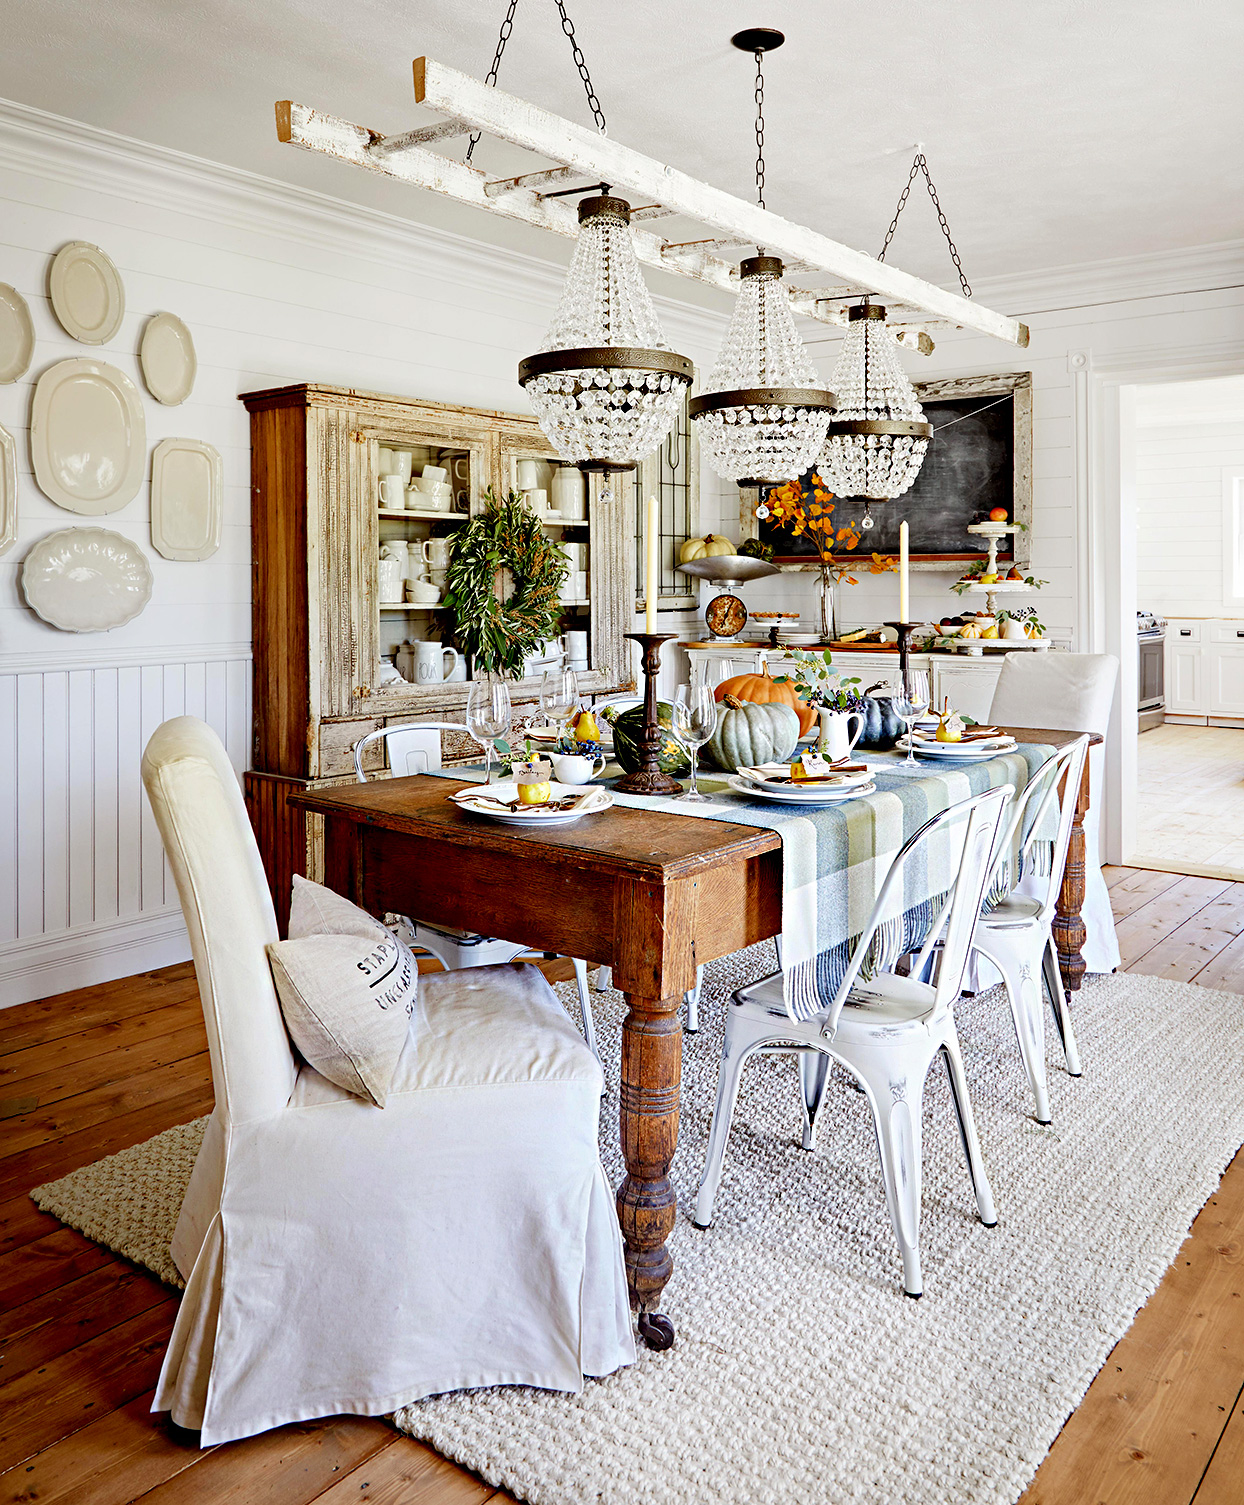 Dining area with wooden table, white metal chairs